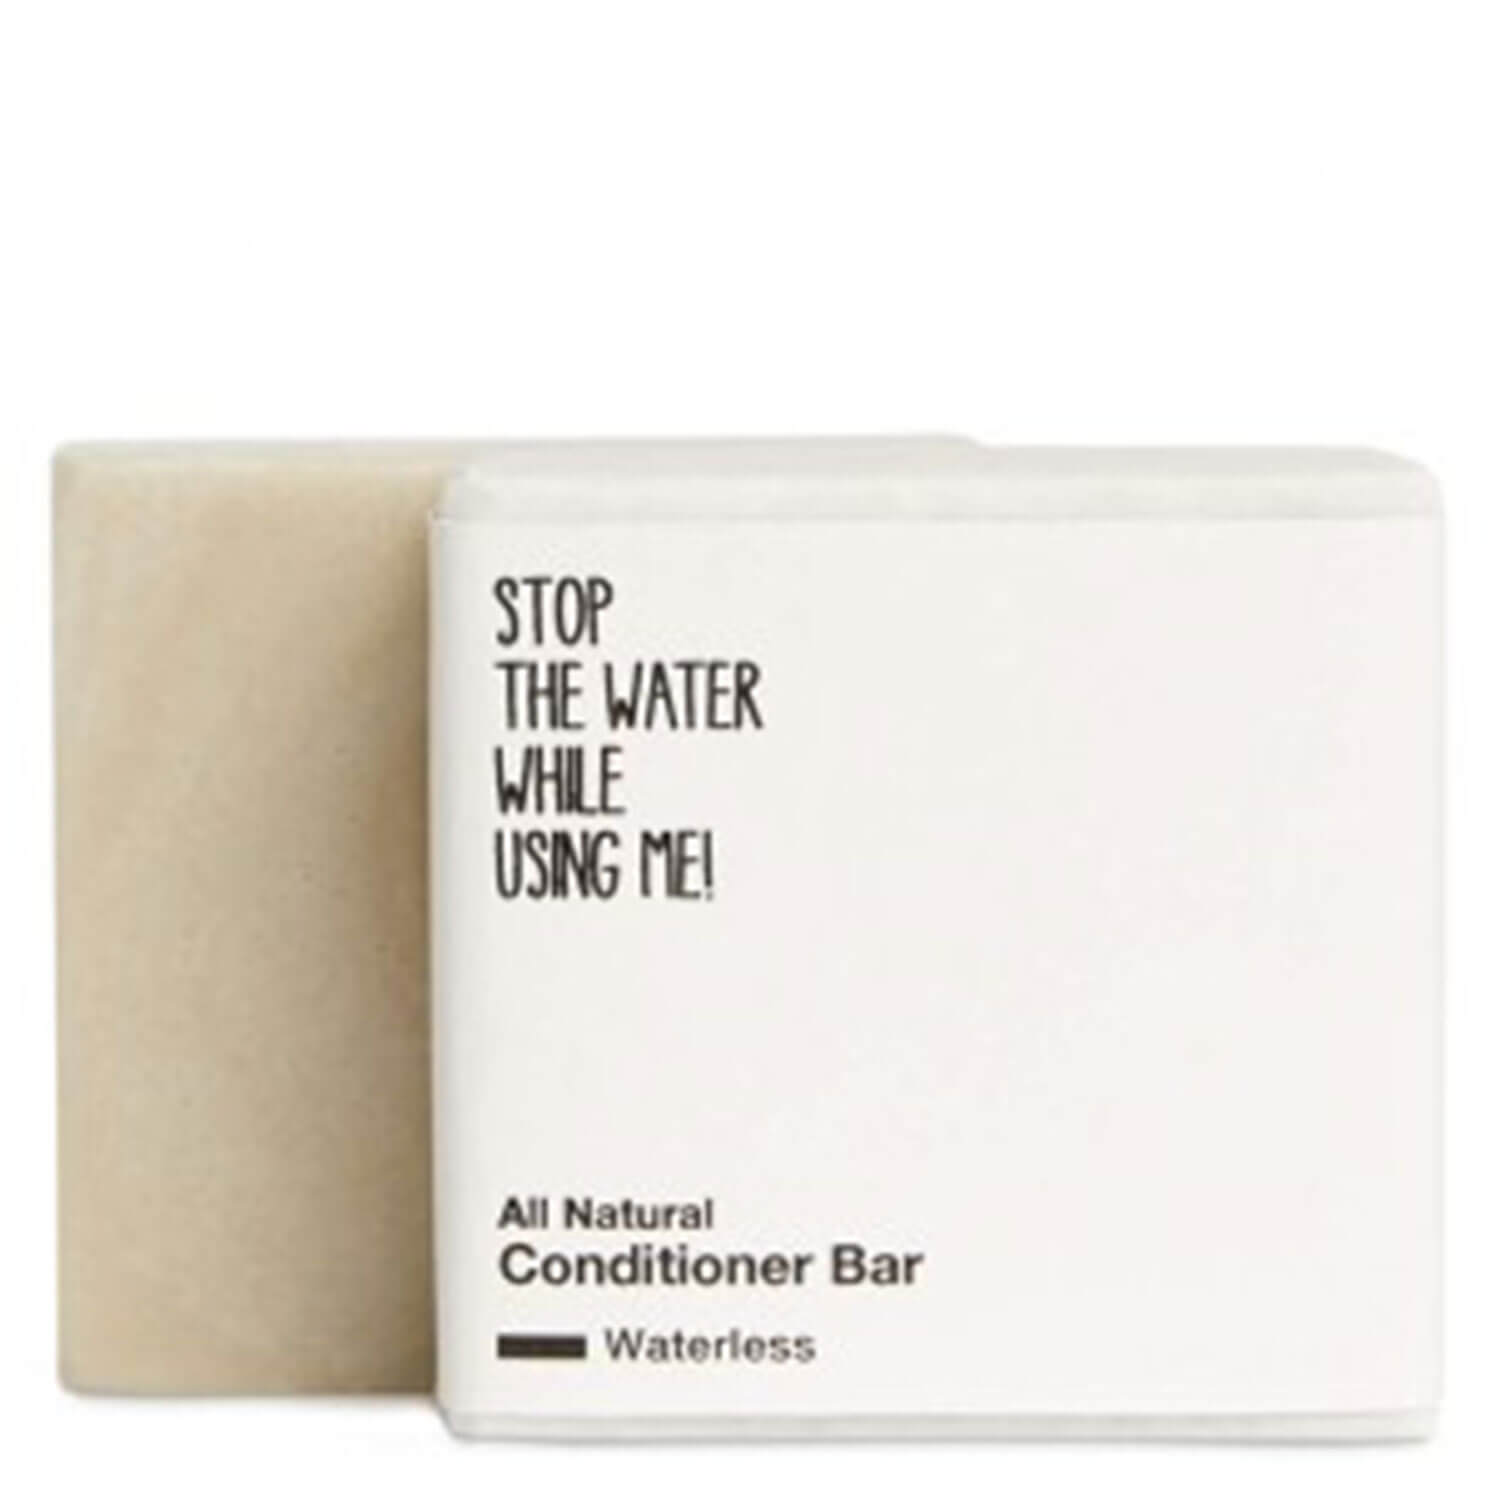 All Natural Hair - Waterless Conditioner Bar - 45g